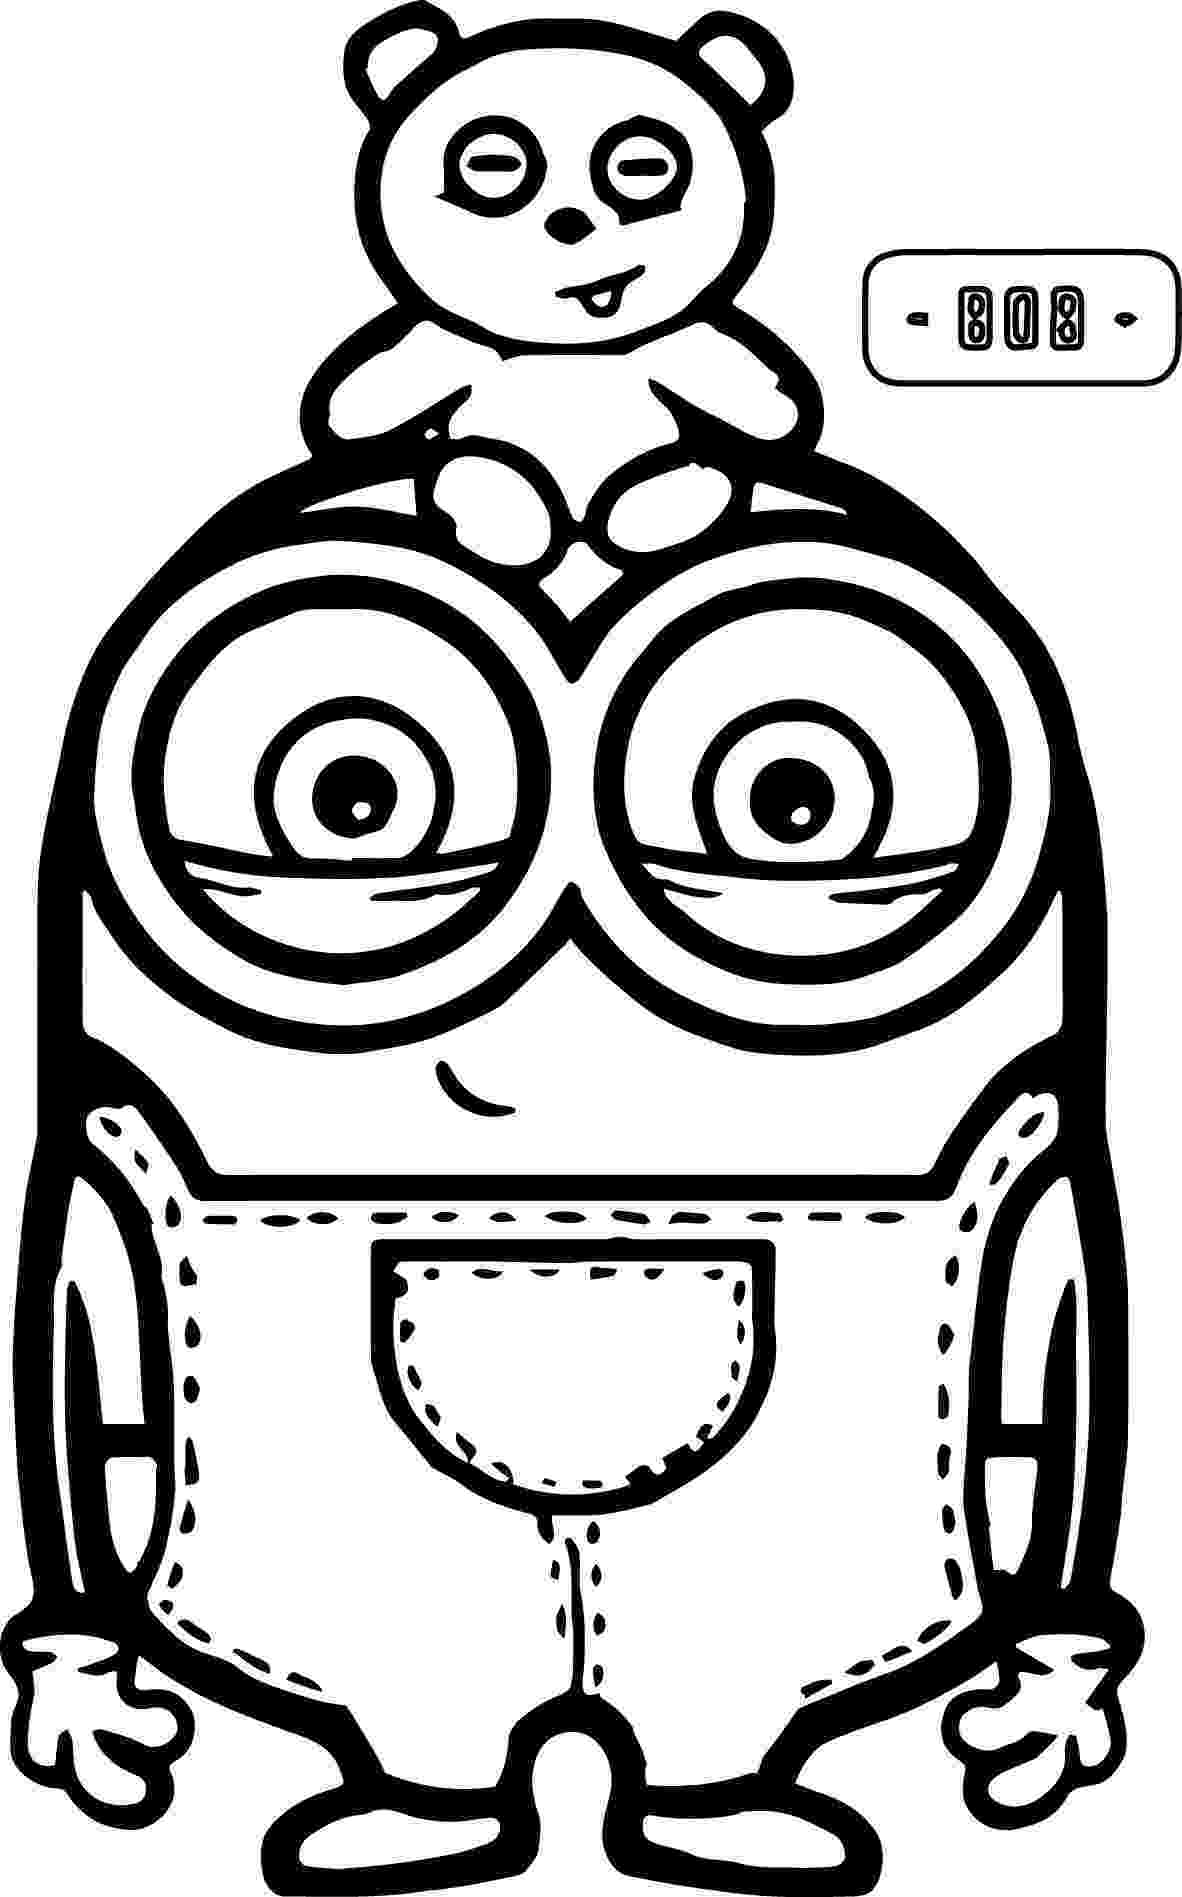 minions colouring pictures minion coloring pages best coloring pages for kids minions pictures colouring 1 1